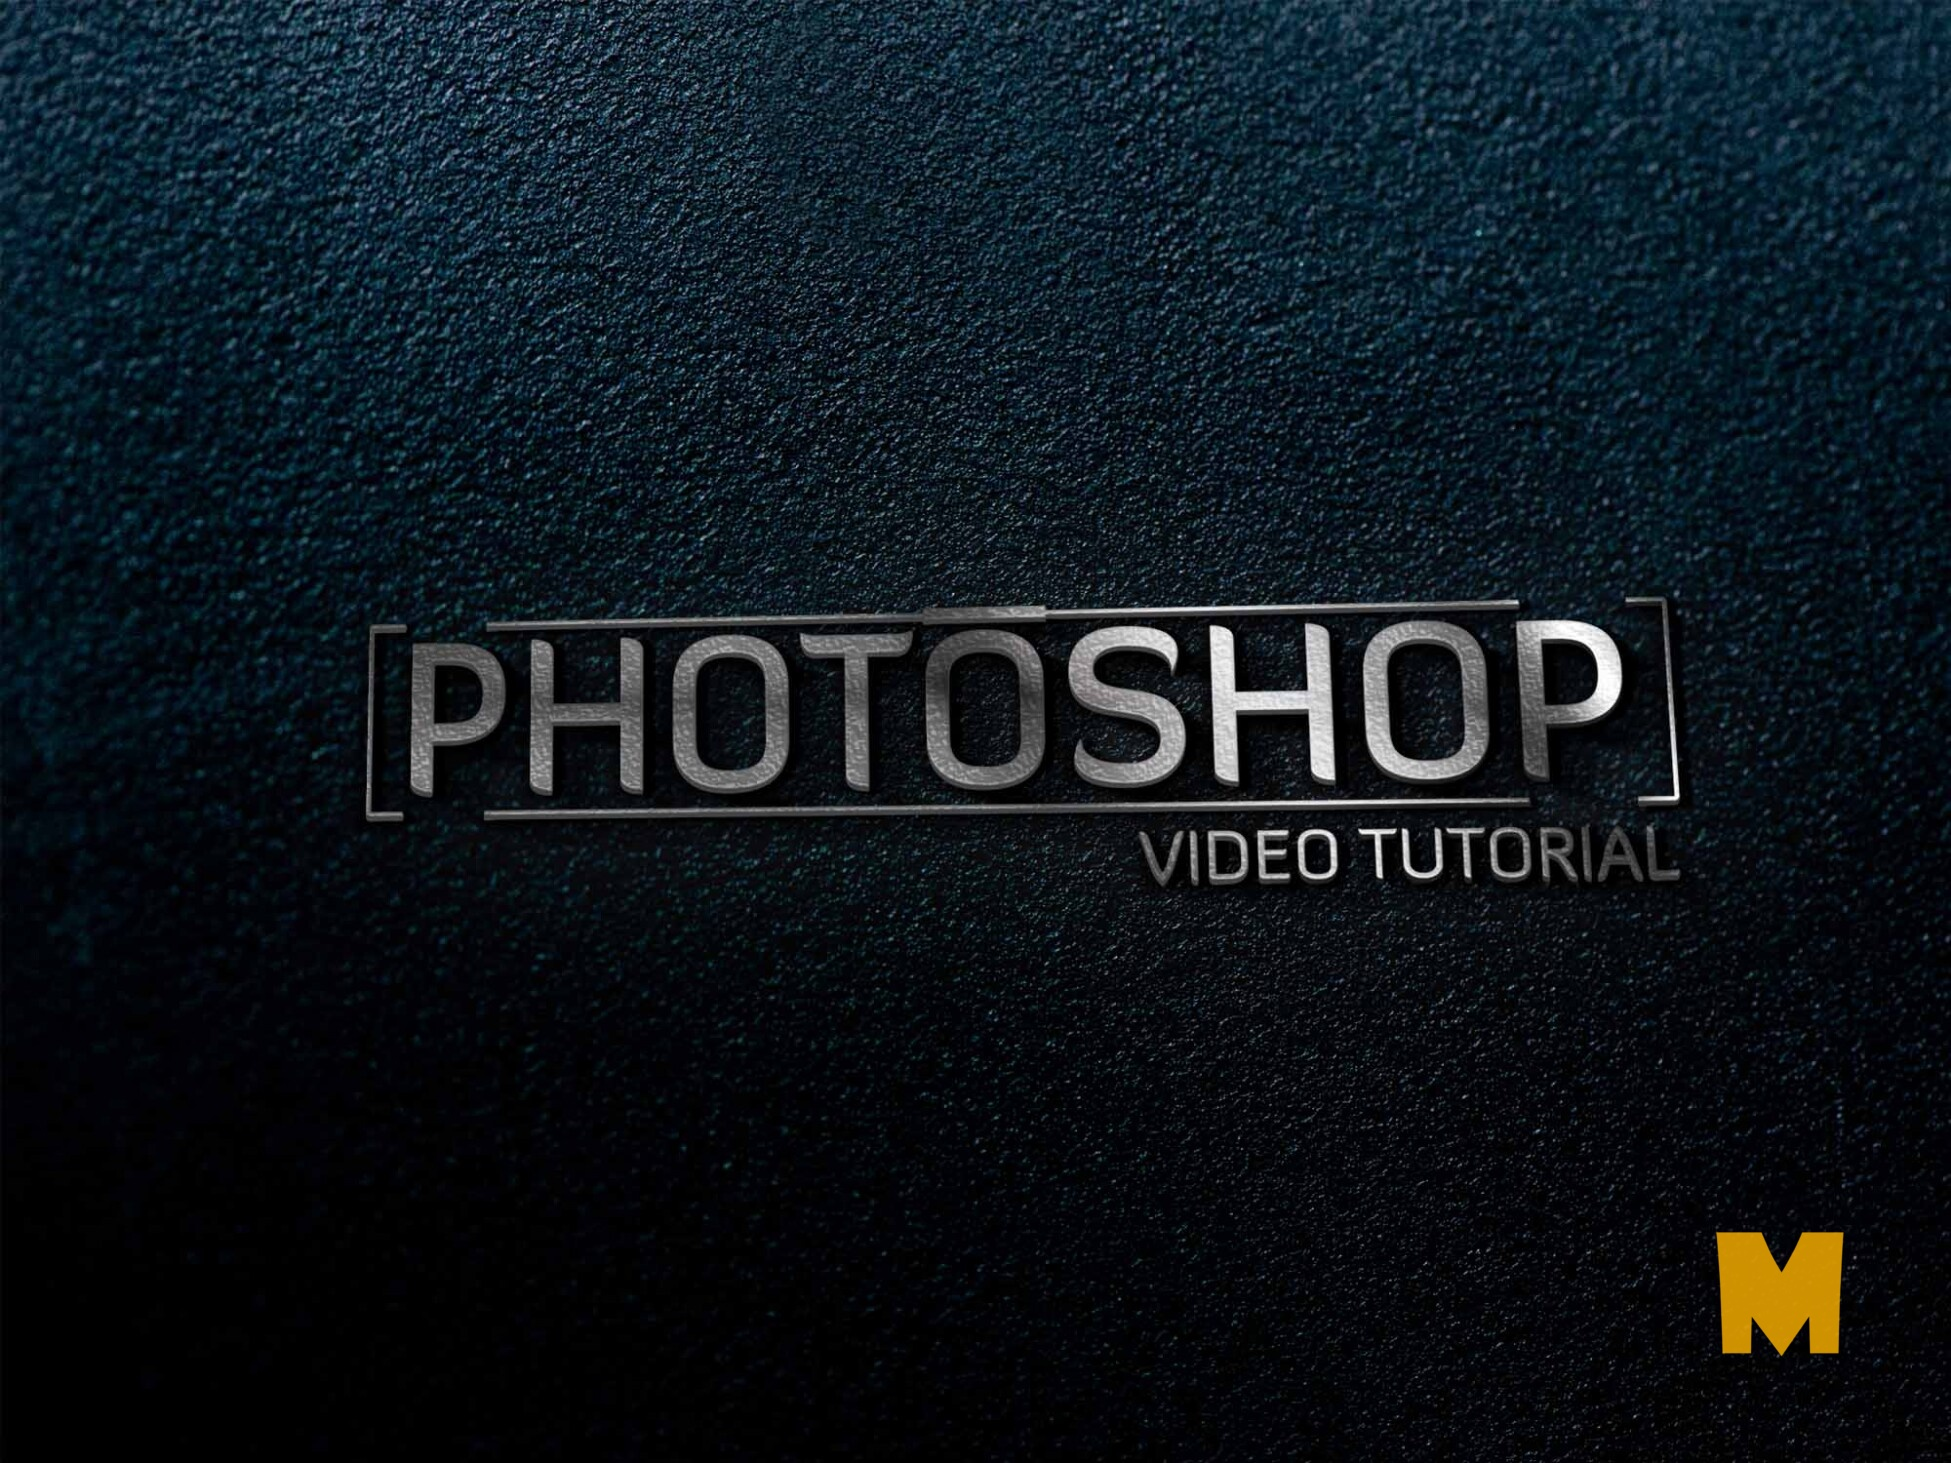 Top Wall logo-mockup- photoshopvideotutorial